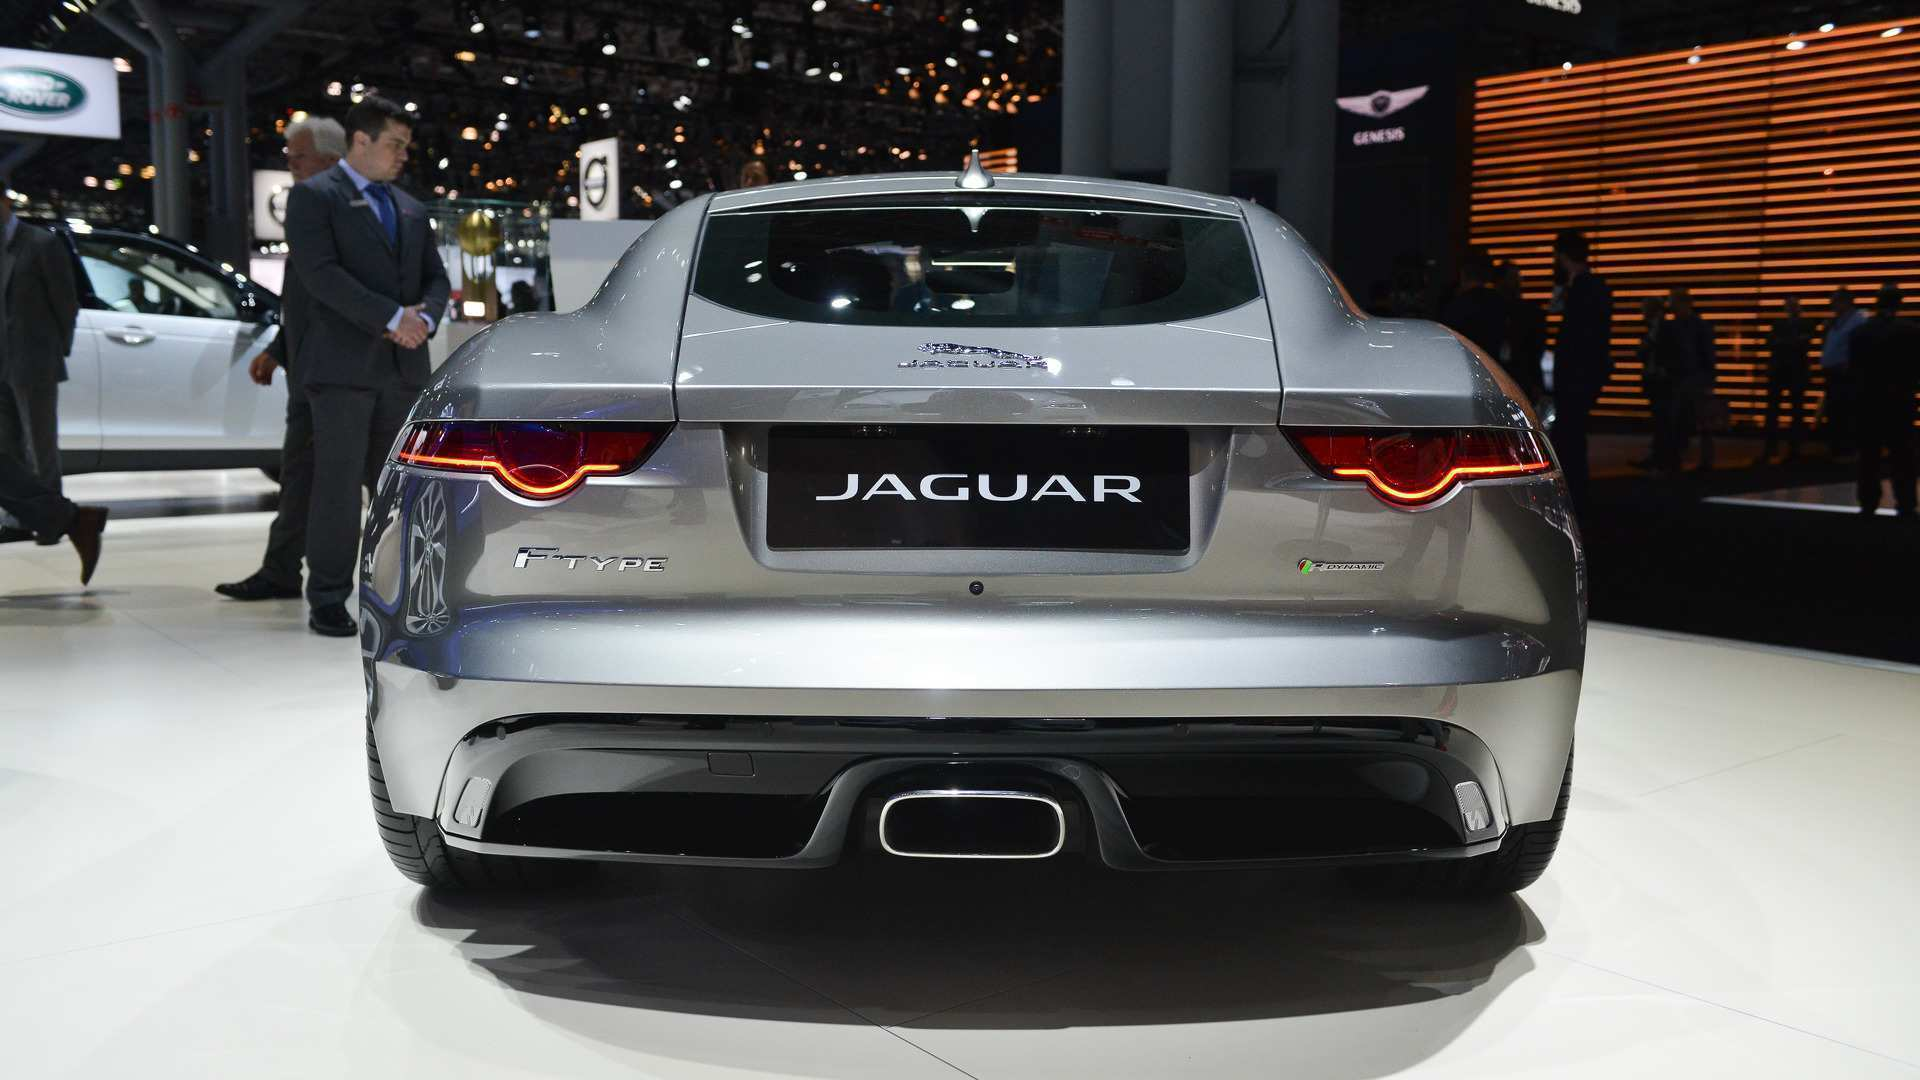 24 Concept of 2020 Jaguar F Type Svr Specs with 2020 Jaguar F Type Svr